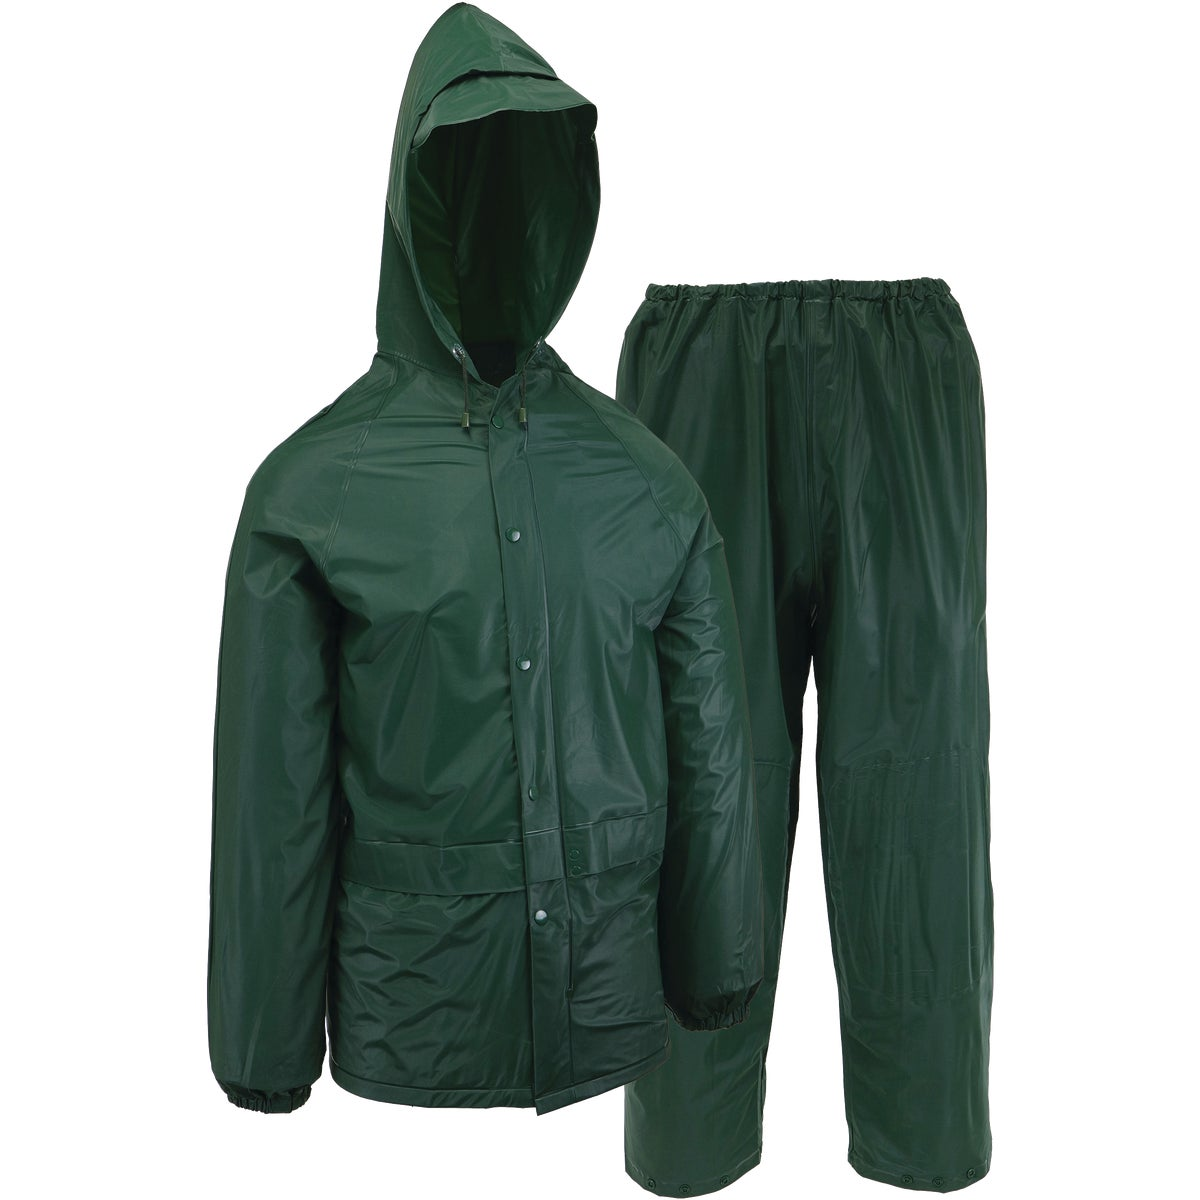 LG 35MM 3PC GRN RAINSUIT - R131L by Custom Leathercraft